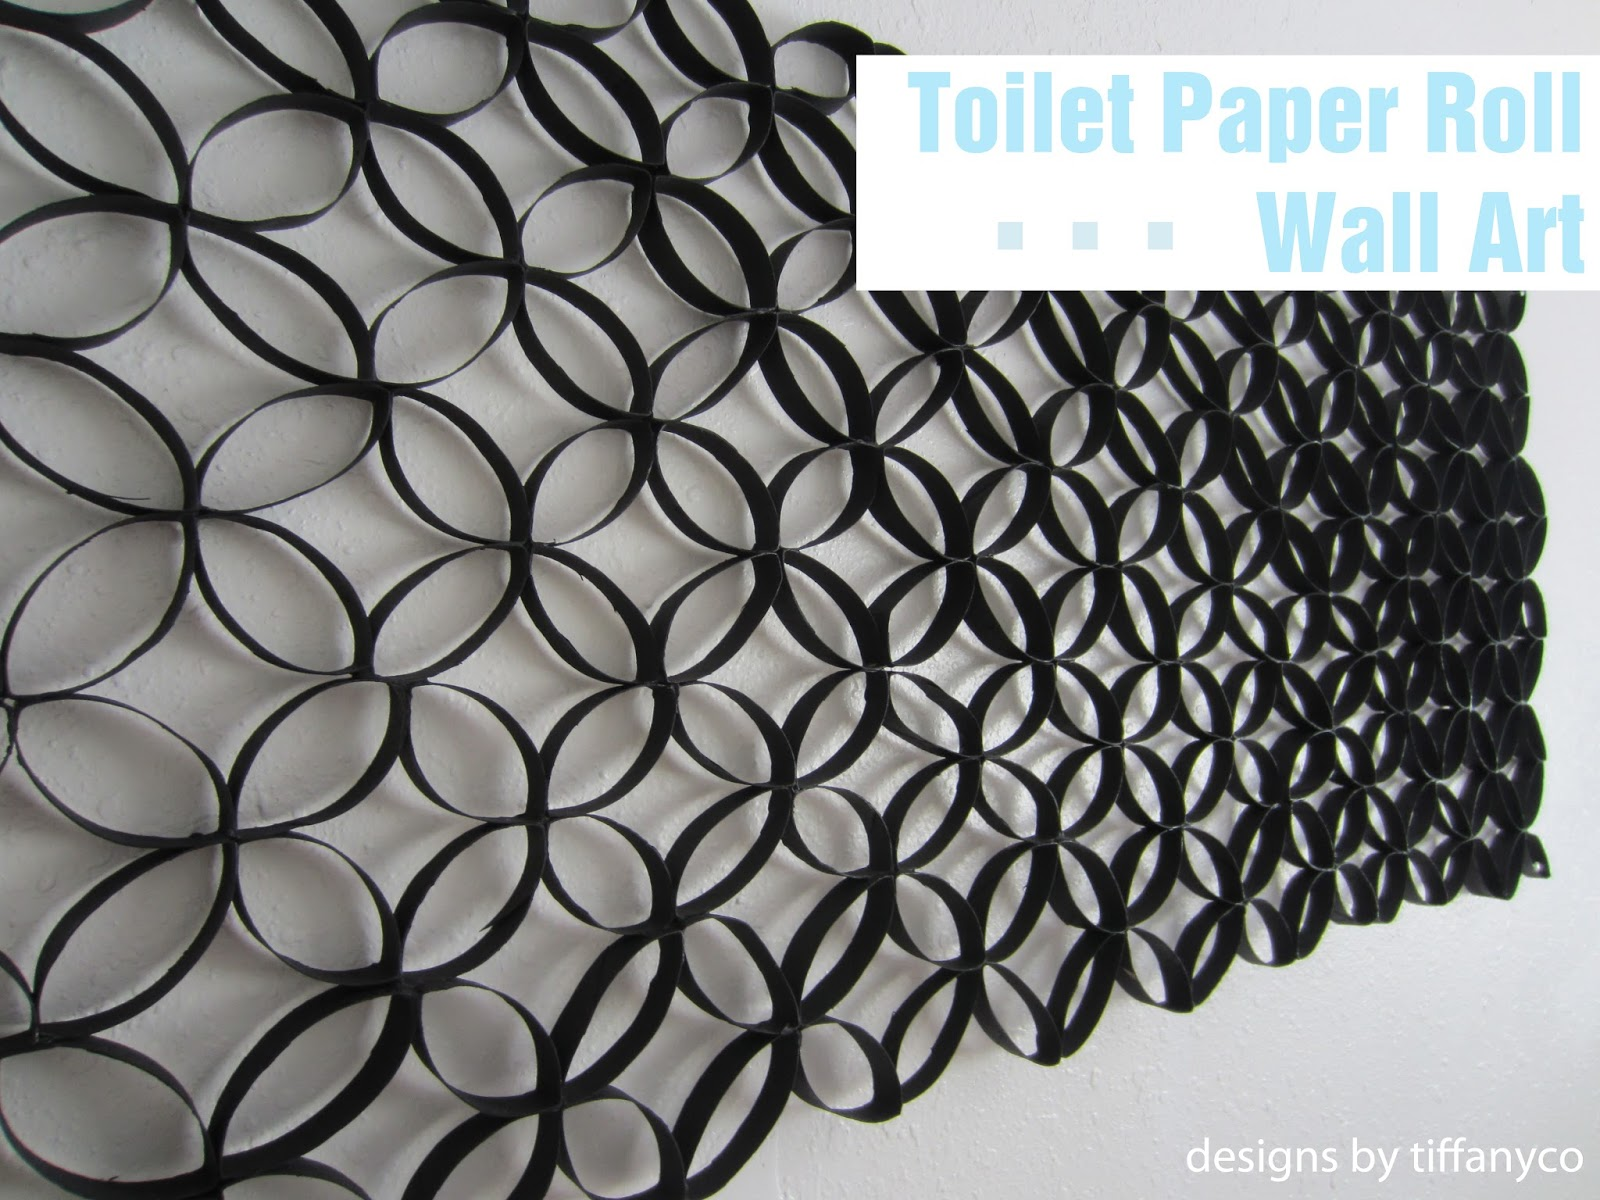 Toilet Paper Roll Wall Art - Designs by TiffanyCo